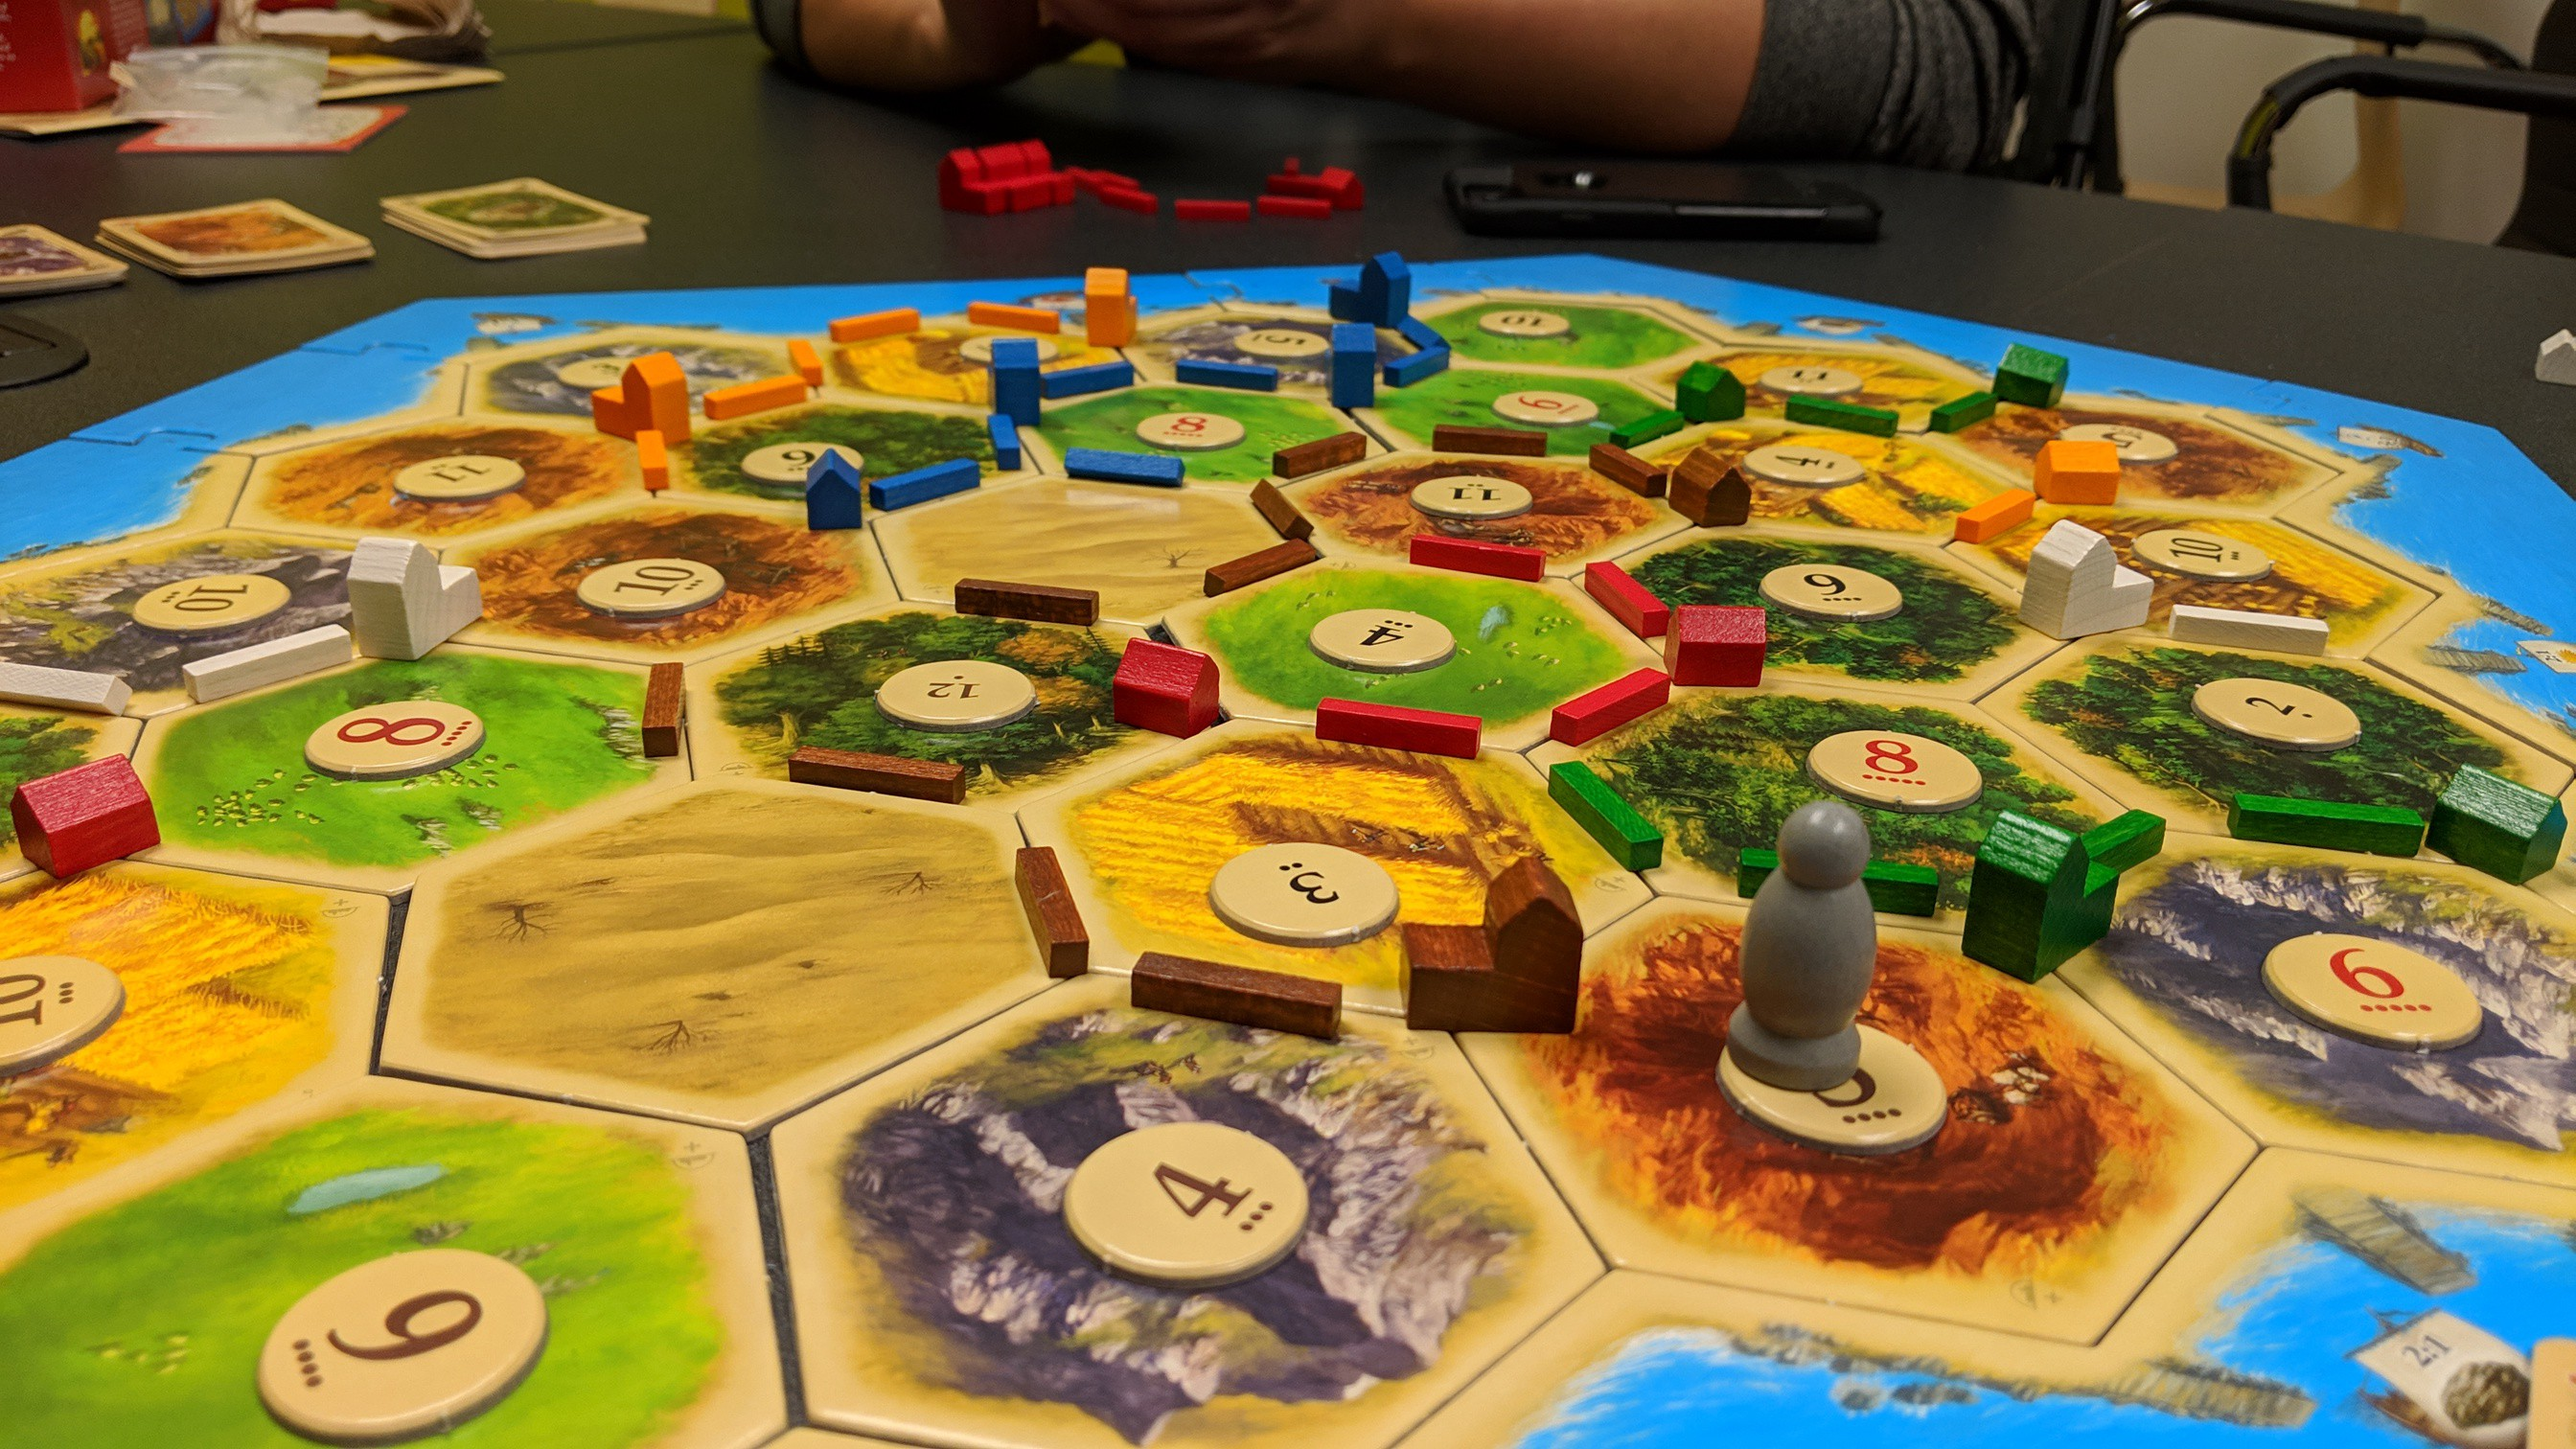 A table setup with the boardgame, Settlers of Catan